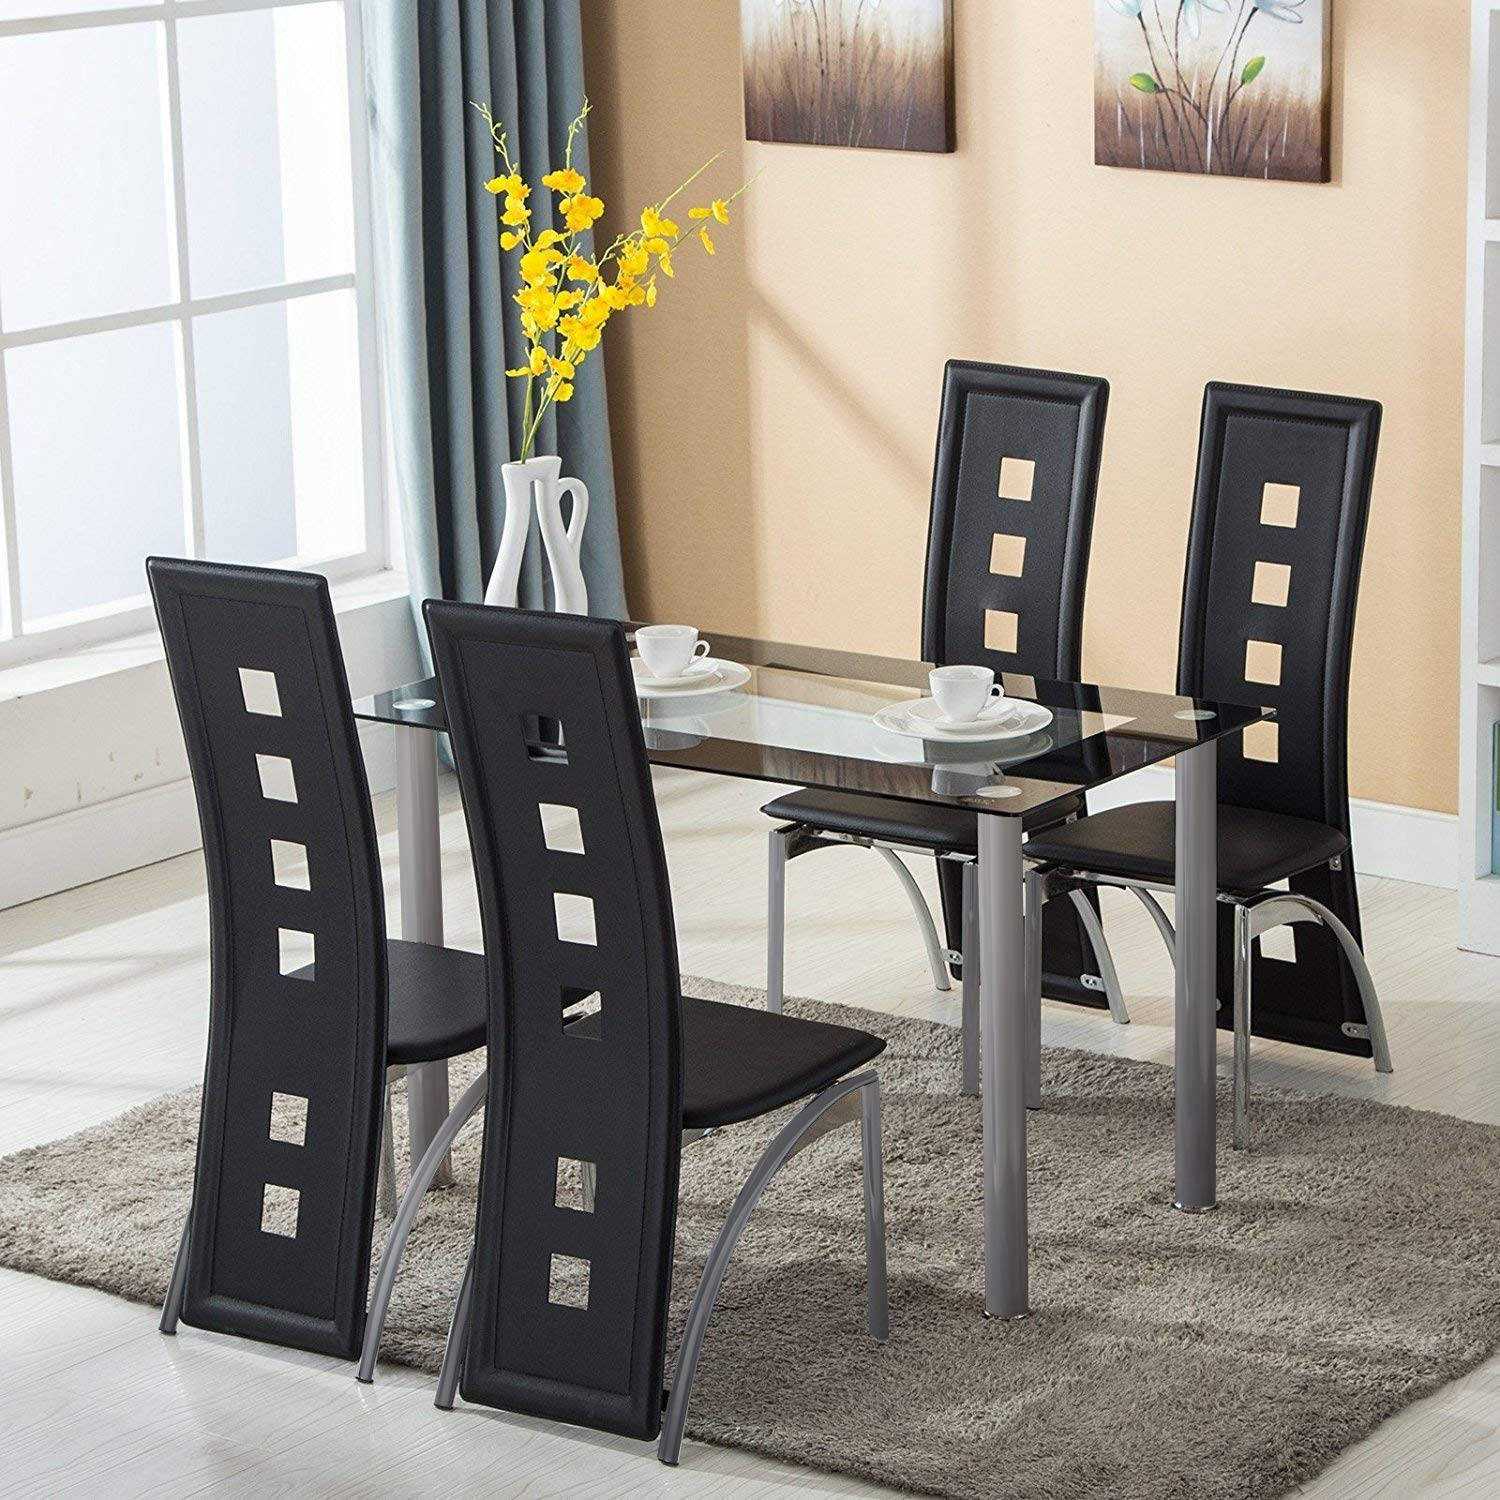 Ktaxon 5 Piece Glass Dining Table Set With 4 Faux Leather Chairs Dining Furniture Black Walmart Com Walmart Com